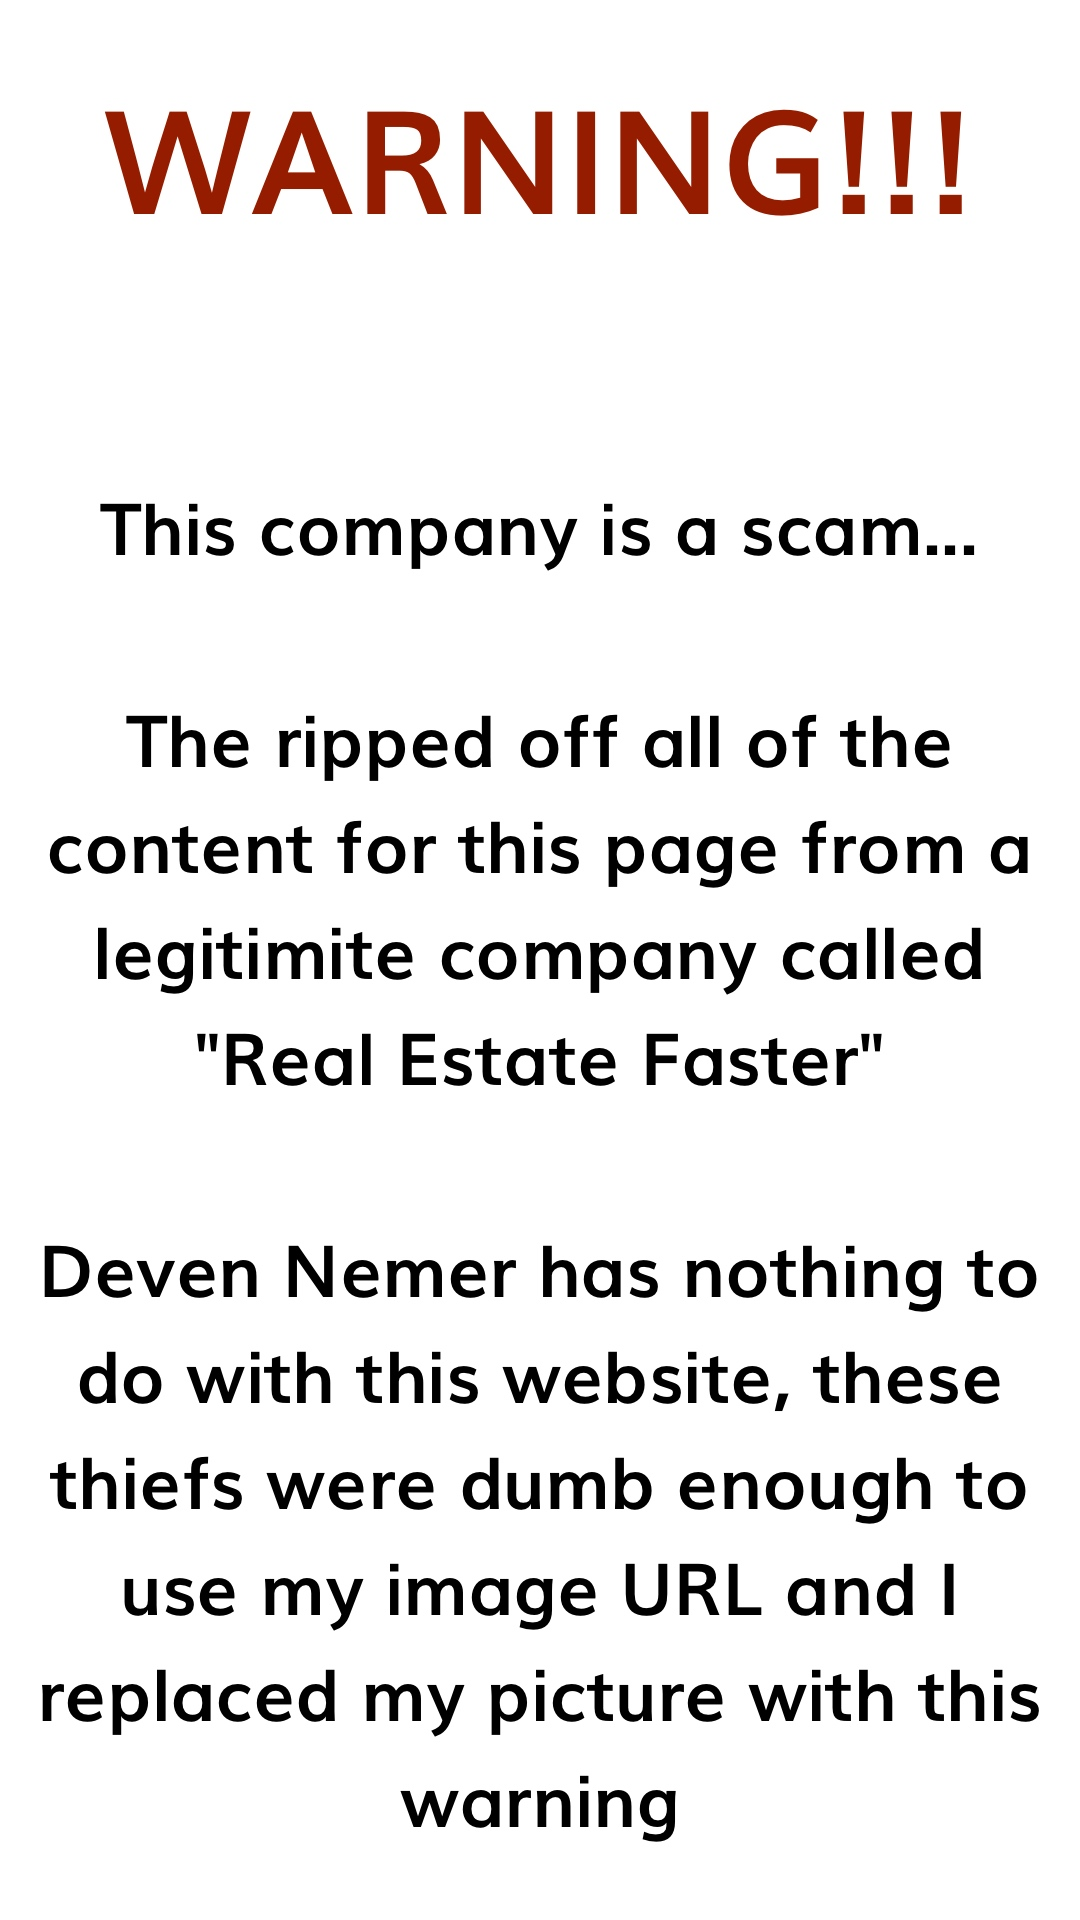 Deven Nemer CEO - Real Estate Faster